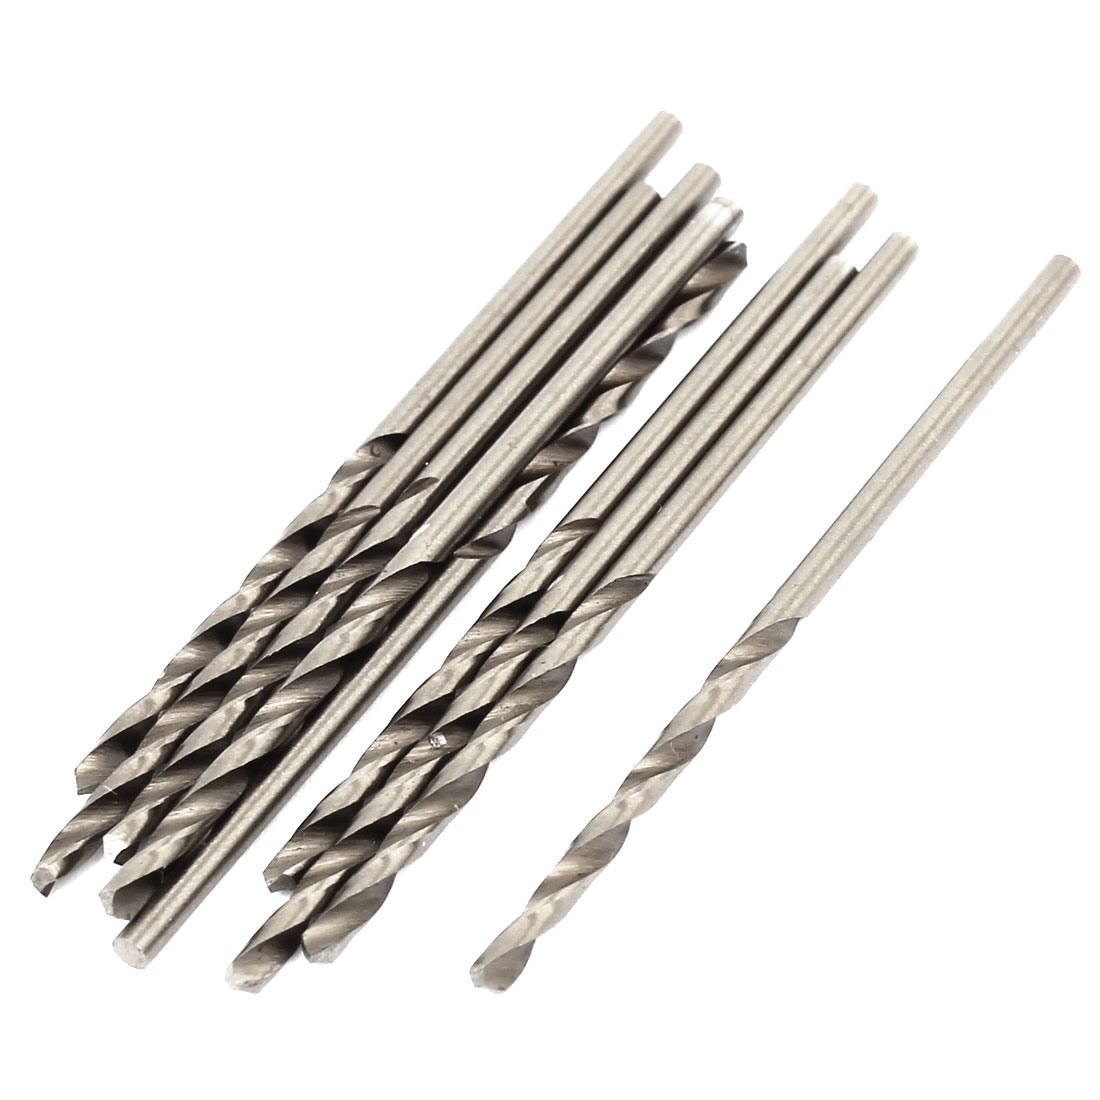 Cobalt High Speed Steel 1.8mmx25mm Tip Straight Shank Twist Drill Bit 10 Pcs